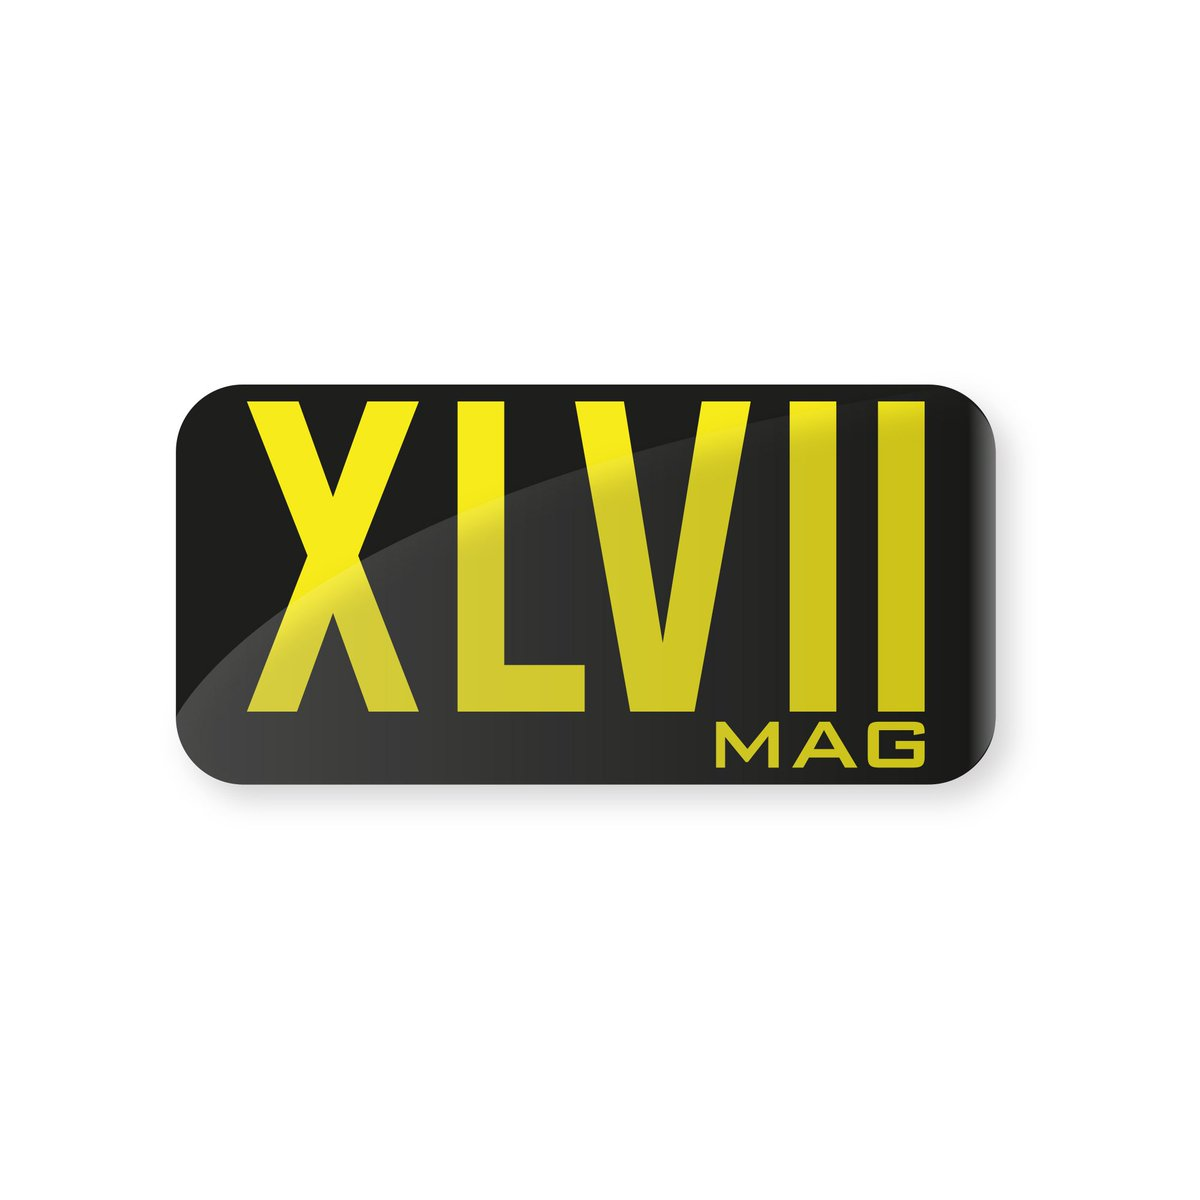 #xlviimag  Looking for #artists &amp; #music #producer, #singers, #edm, #djs #musicnews #soundcloud  Email: xlvii@gmail.com<br>http://pic.twitter.com/q8Jqmd5LO4